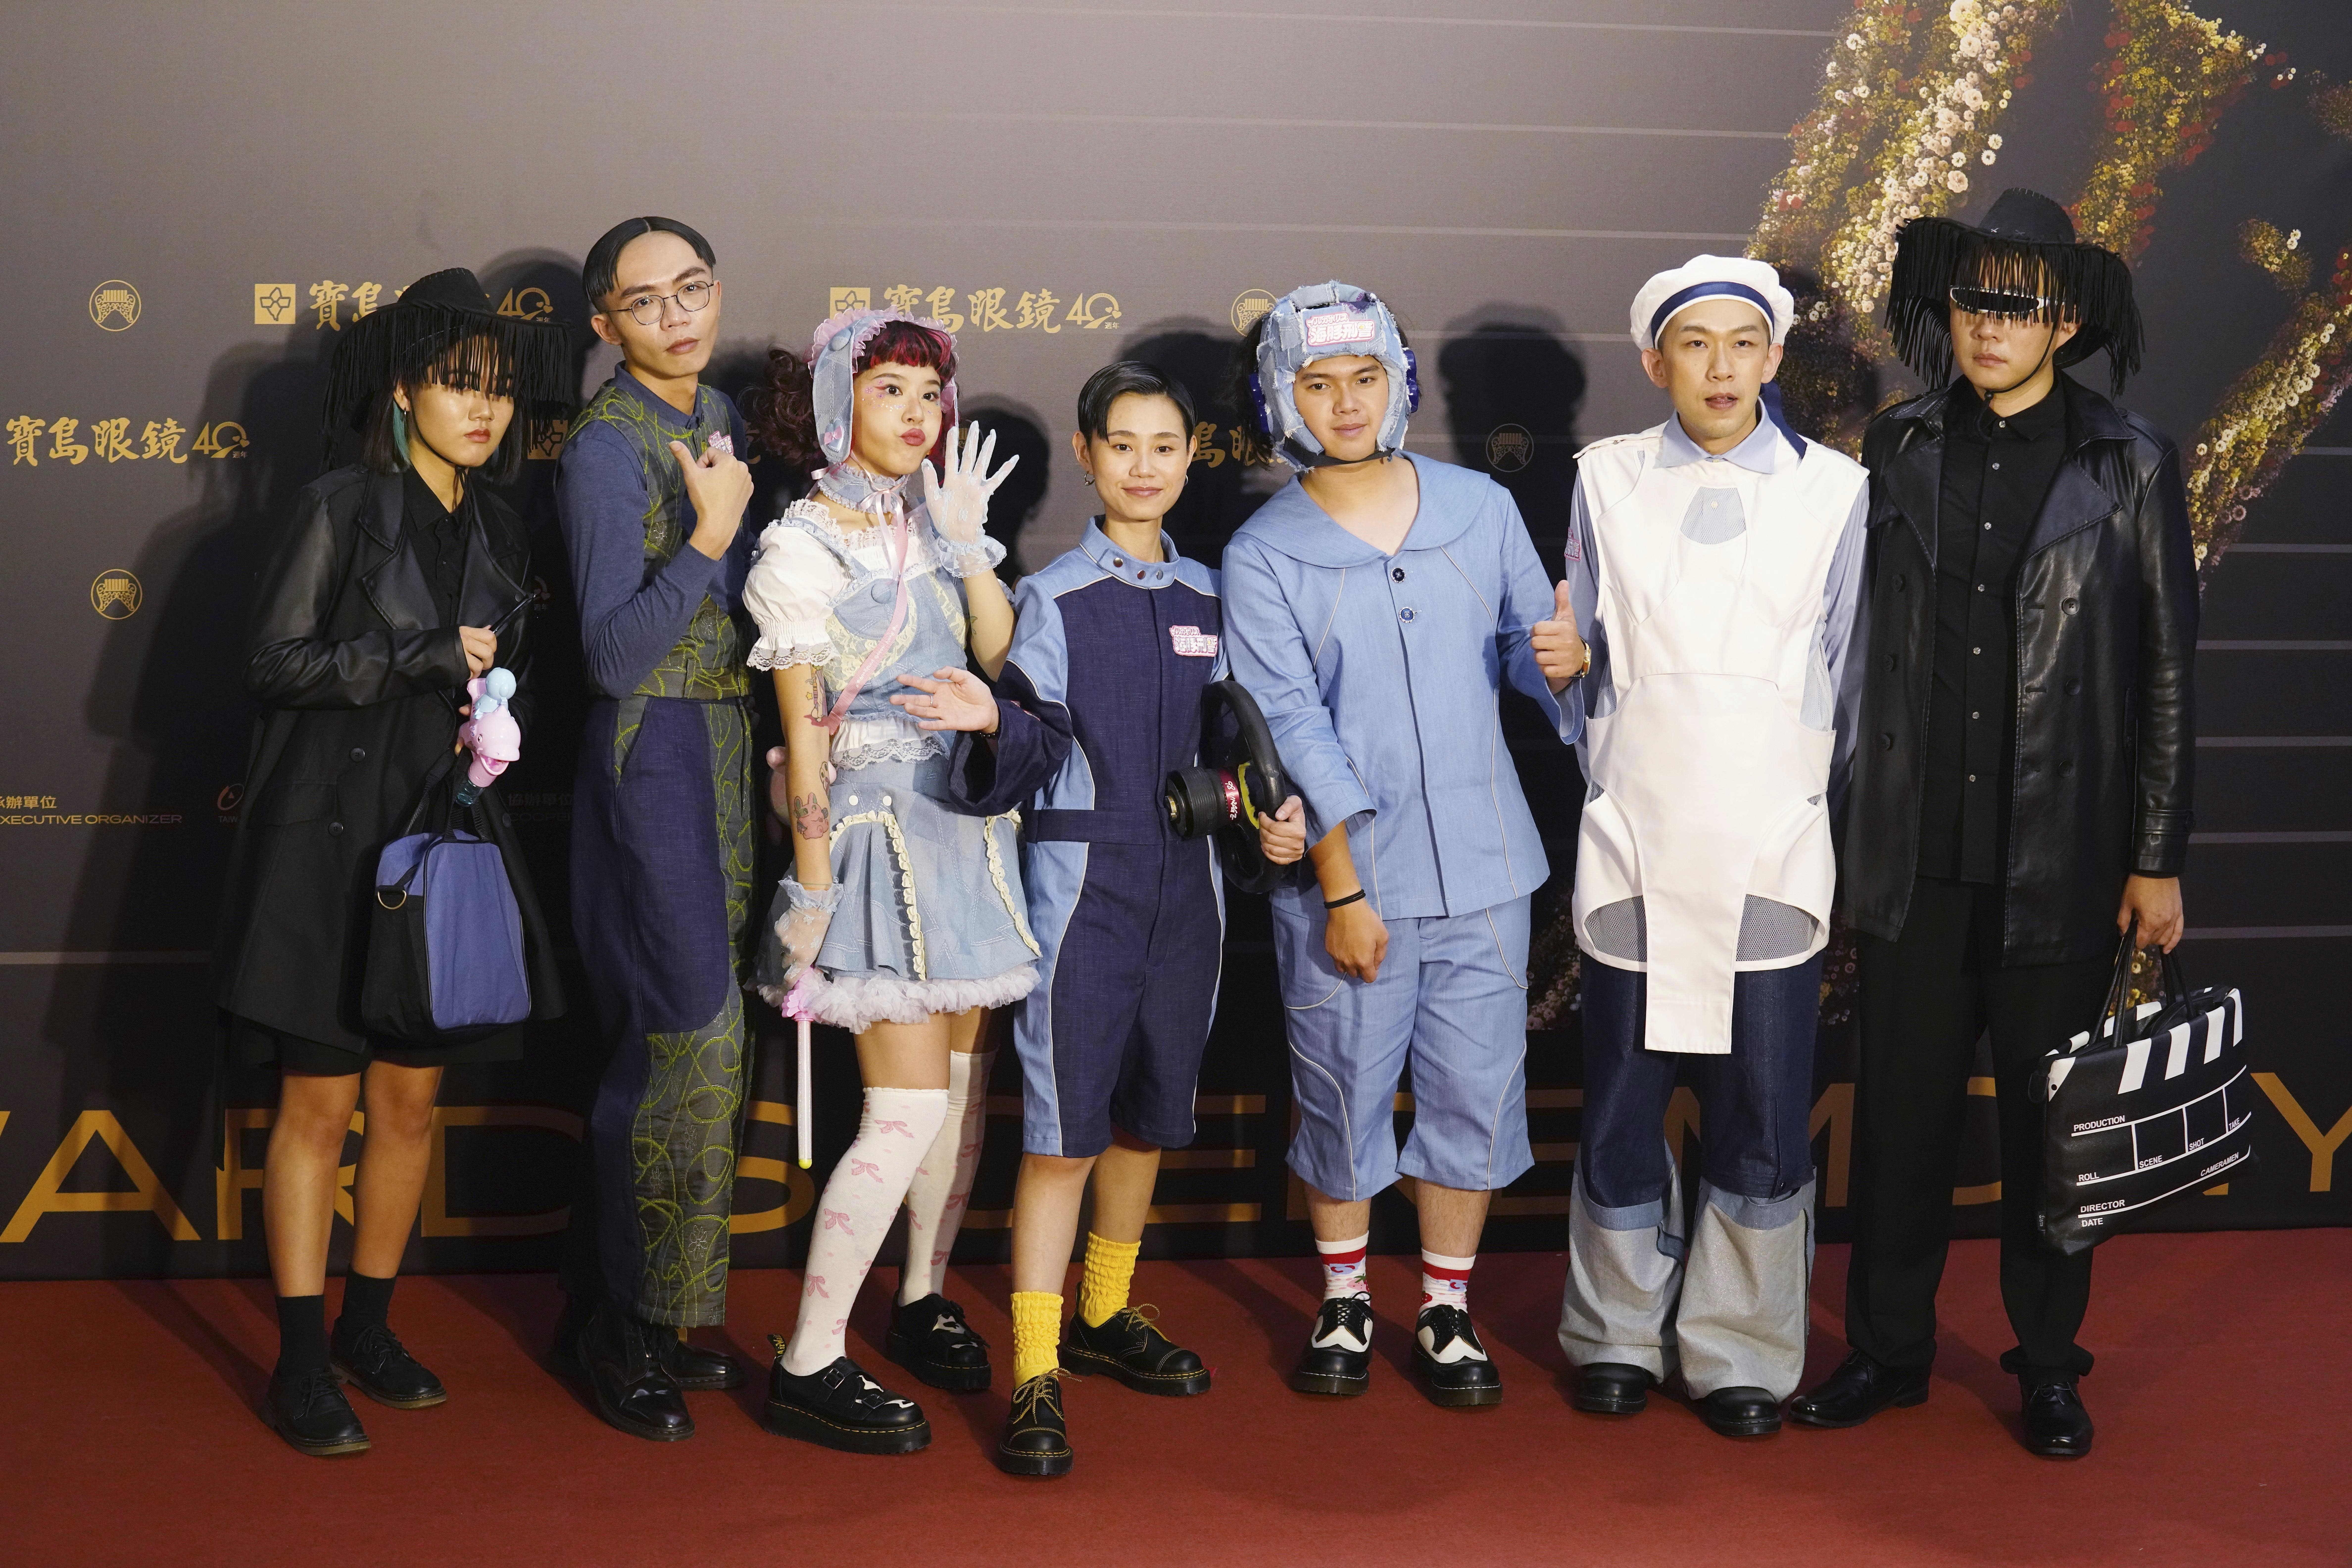 Taiwanese pop group ''Iruka Porisu'' pose as they arrive for the 31th Golden Melody Awards in Taipei, Taiwan, Saturday, Oct. 3, 2020. The awards show, one of the world's biggest Chinese-language pop music annual events was postponed from June to Oct. due to the coronavirus pandemic. (AP Photo/Billy Dai)